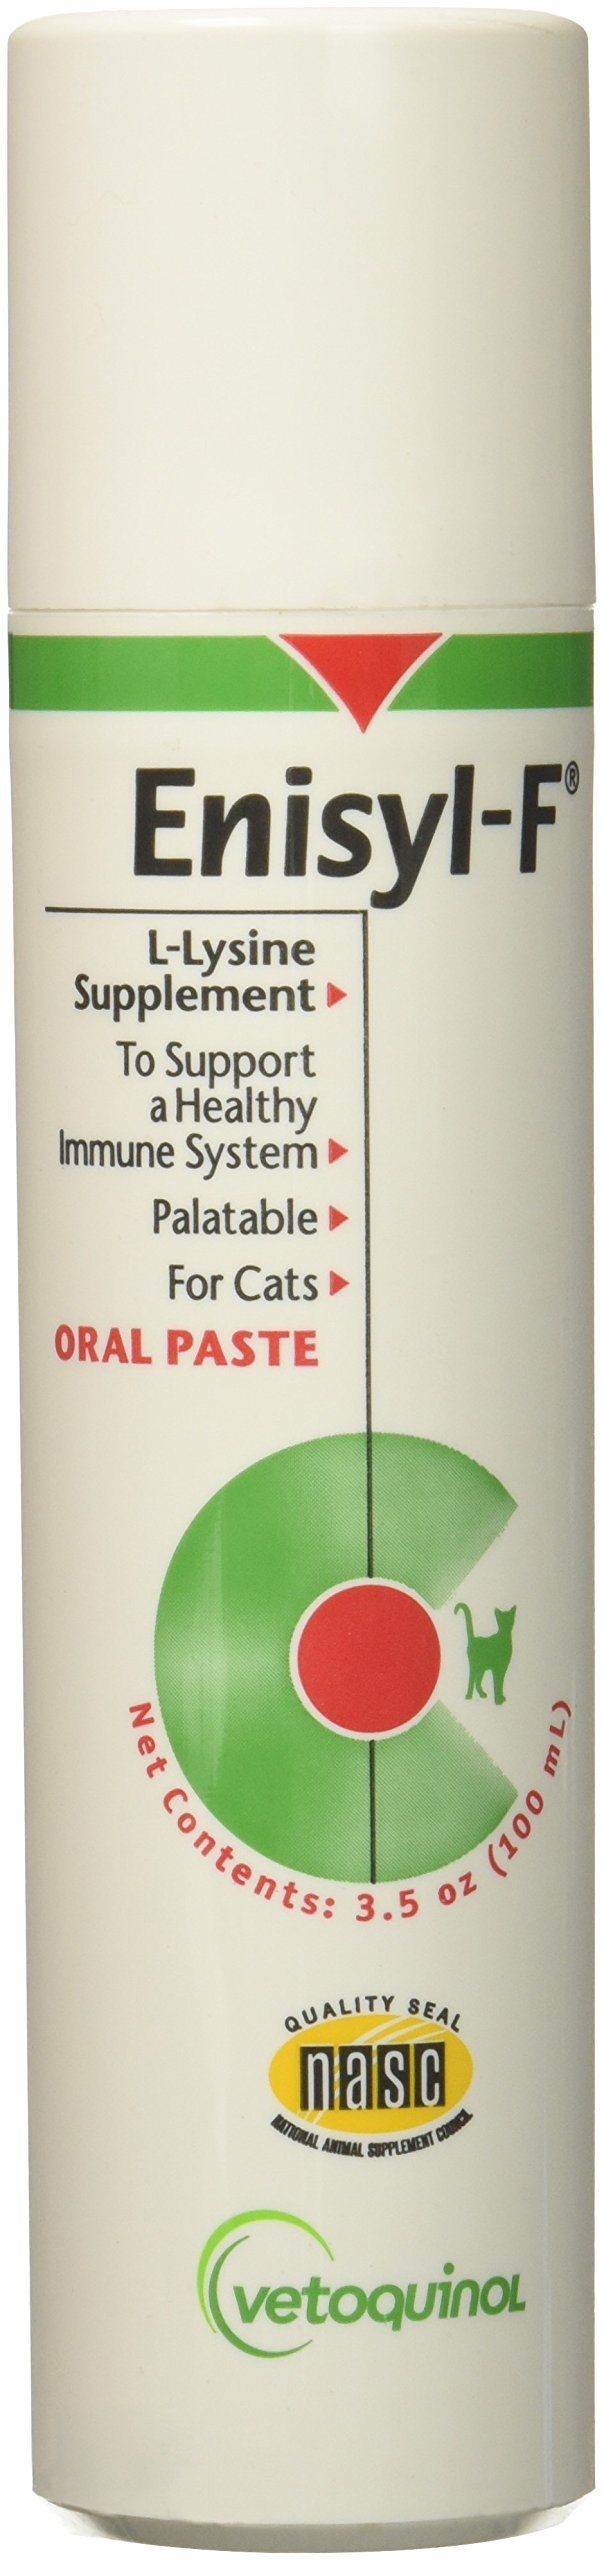 6 Packs Enisyl-F Oral Paste for Cats 600 ml (6 x 100 ml) by Vetoquinol